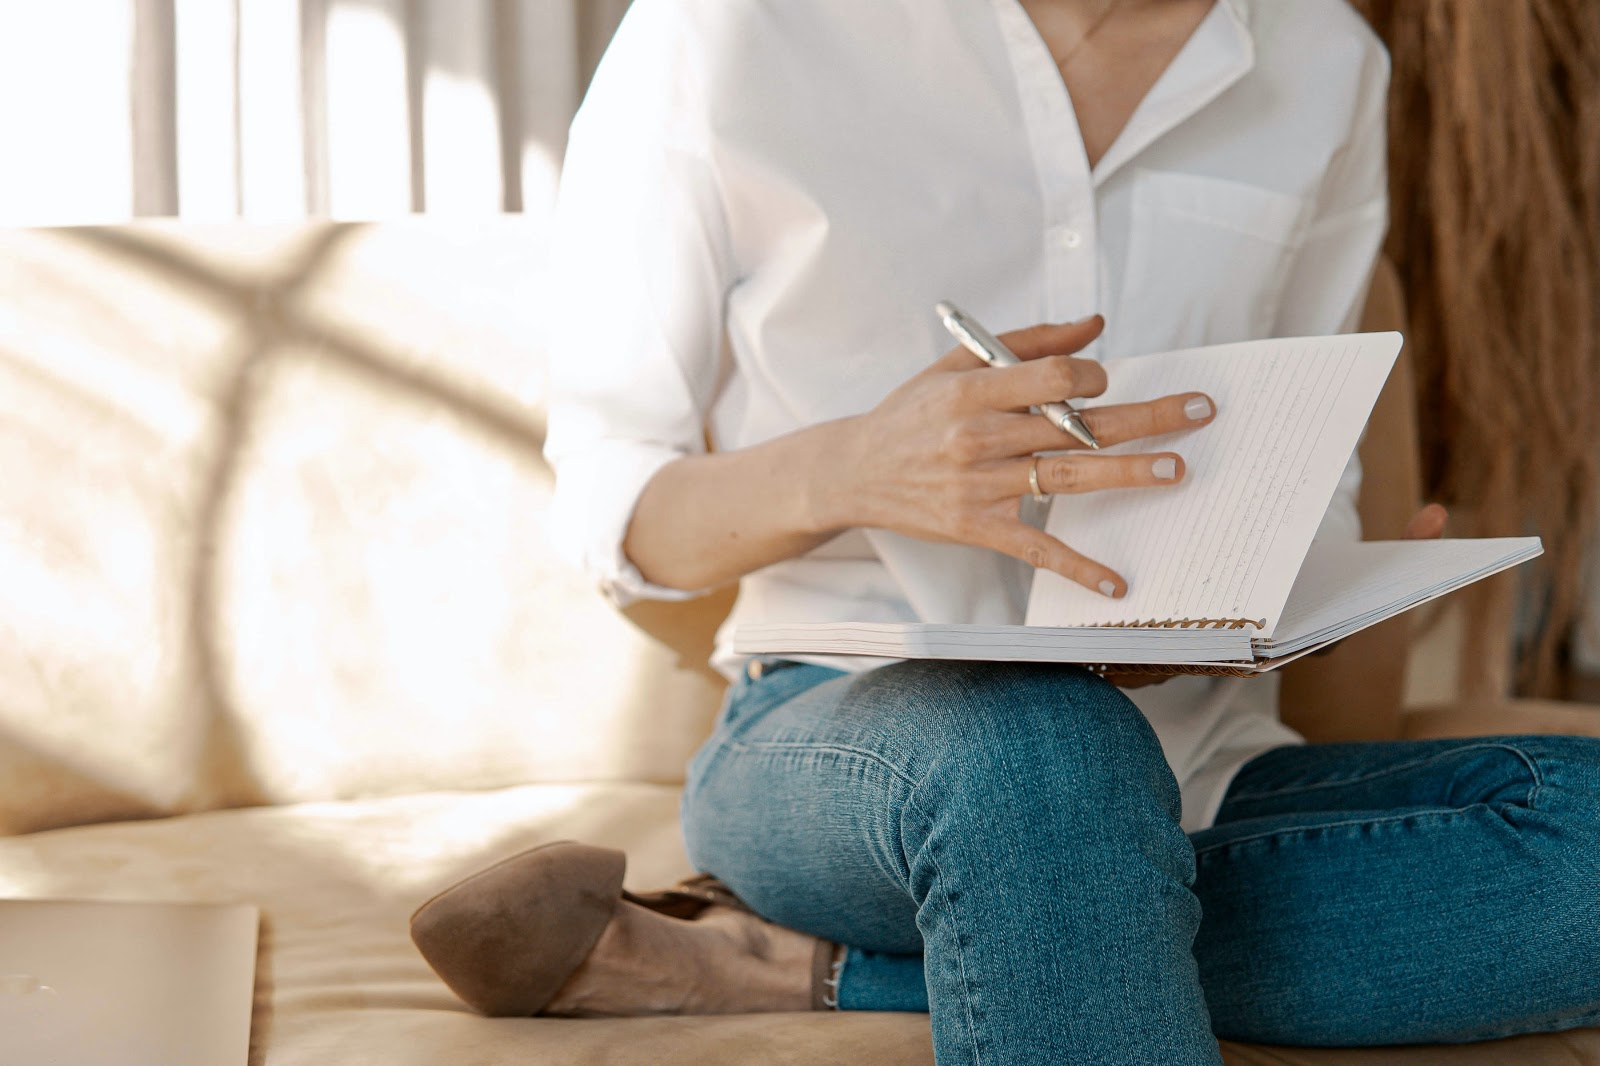 female-writer-flipping-pages-on-her-notebook